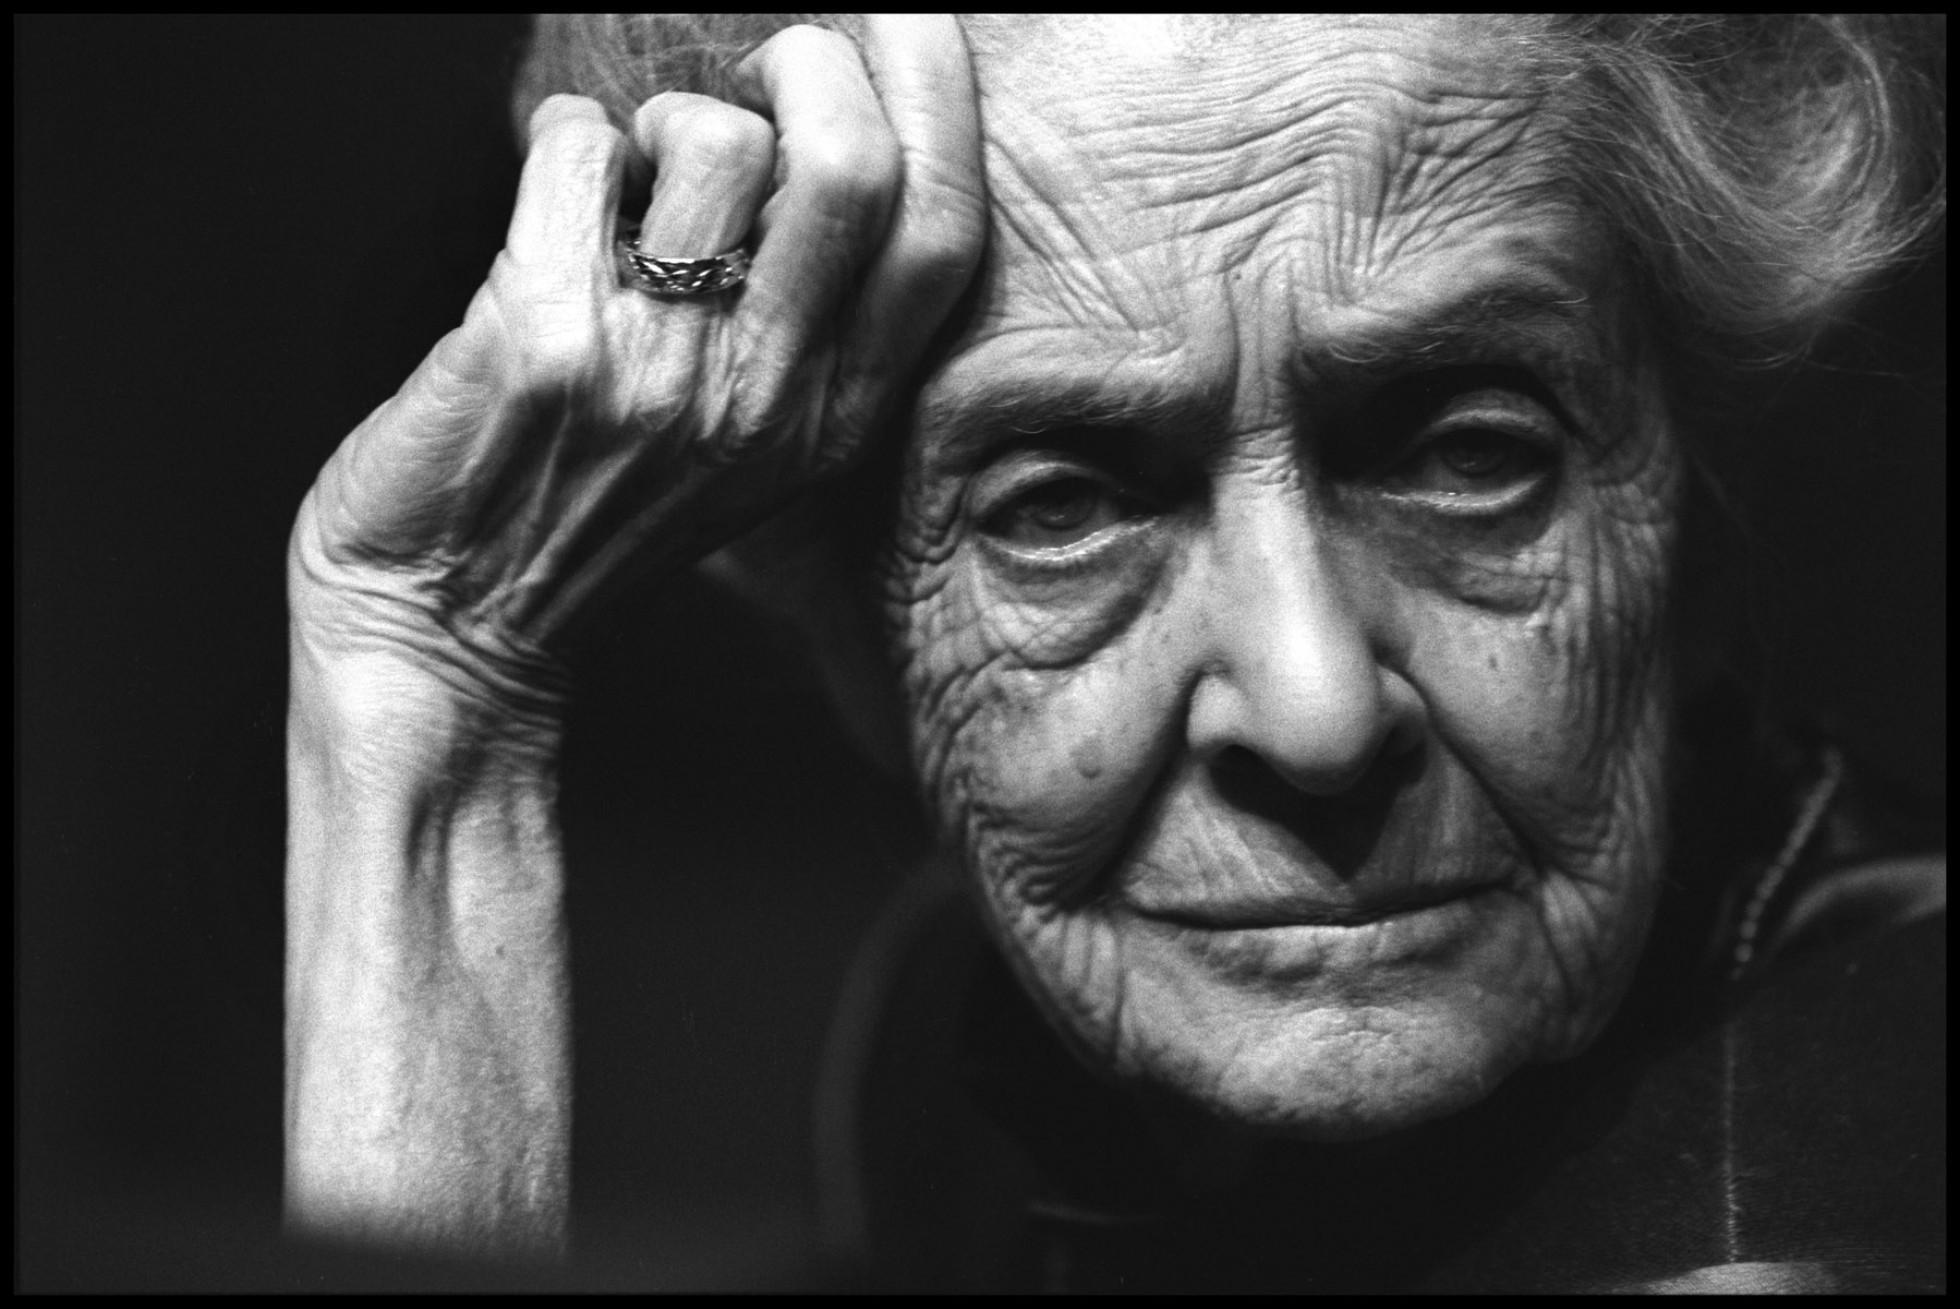 life history of rita levi montalcini Get information, facts, and pictures about rita levi-montalcini at encyclopediacom make research projects and school reports about rita levi-montalcini easy with credible articles from our free, online encyclopedia and dictionary.